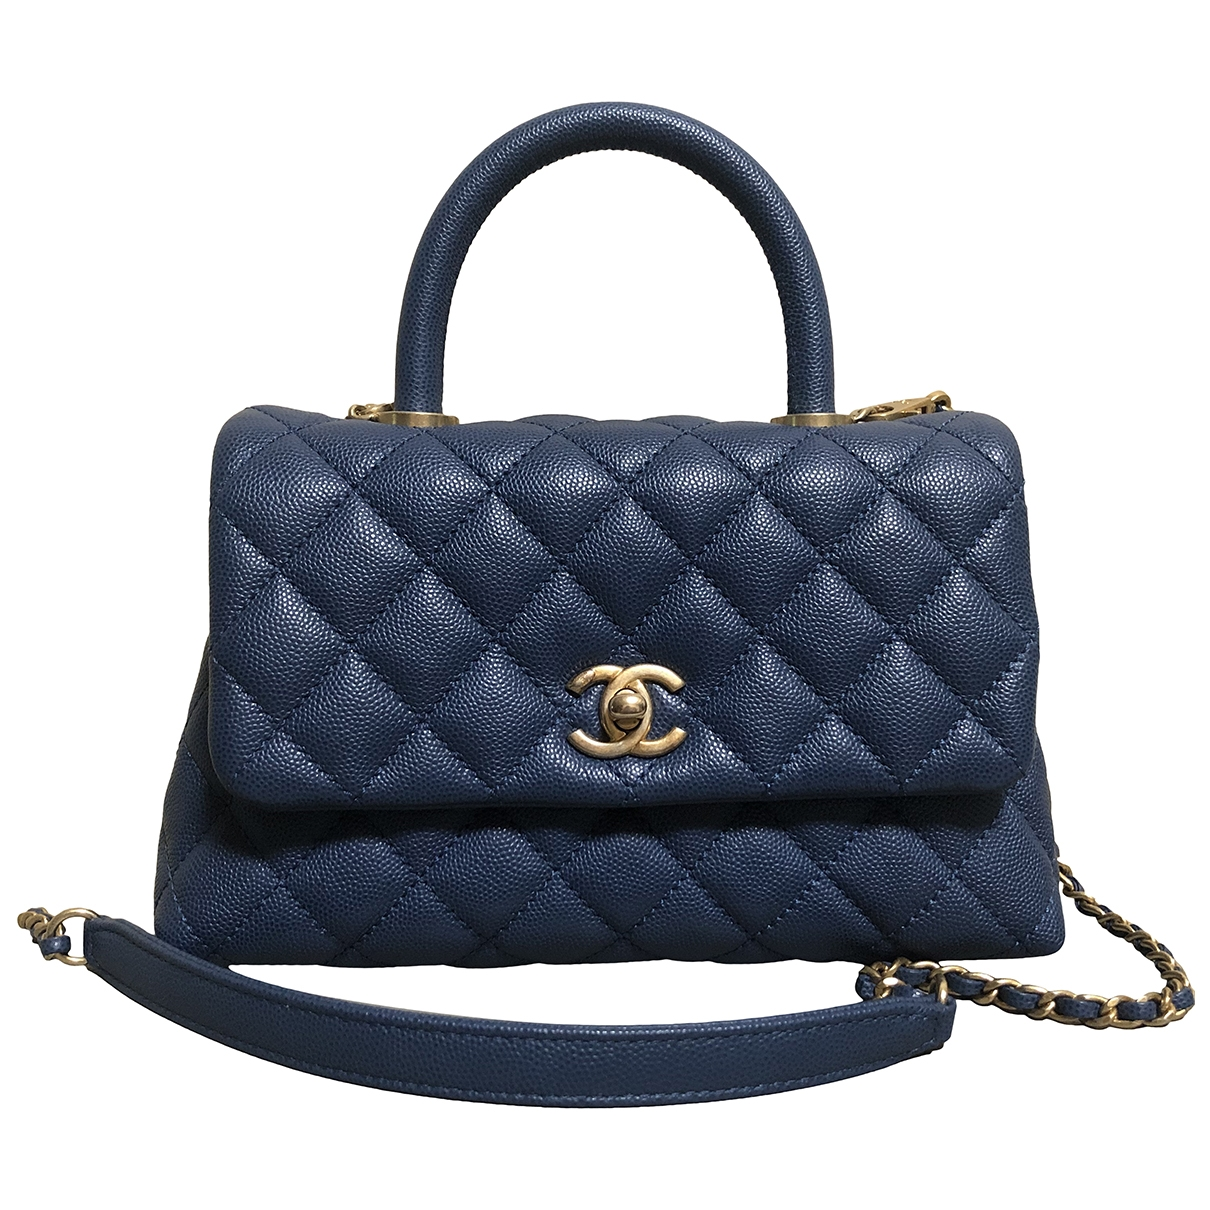 Chanel Coco Handle Blue Leather handbag for Women \N